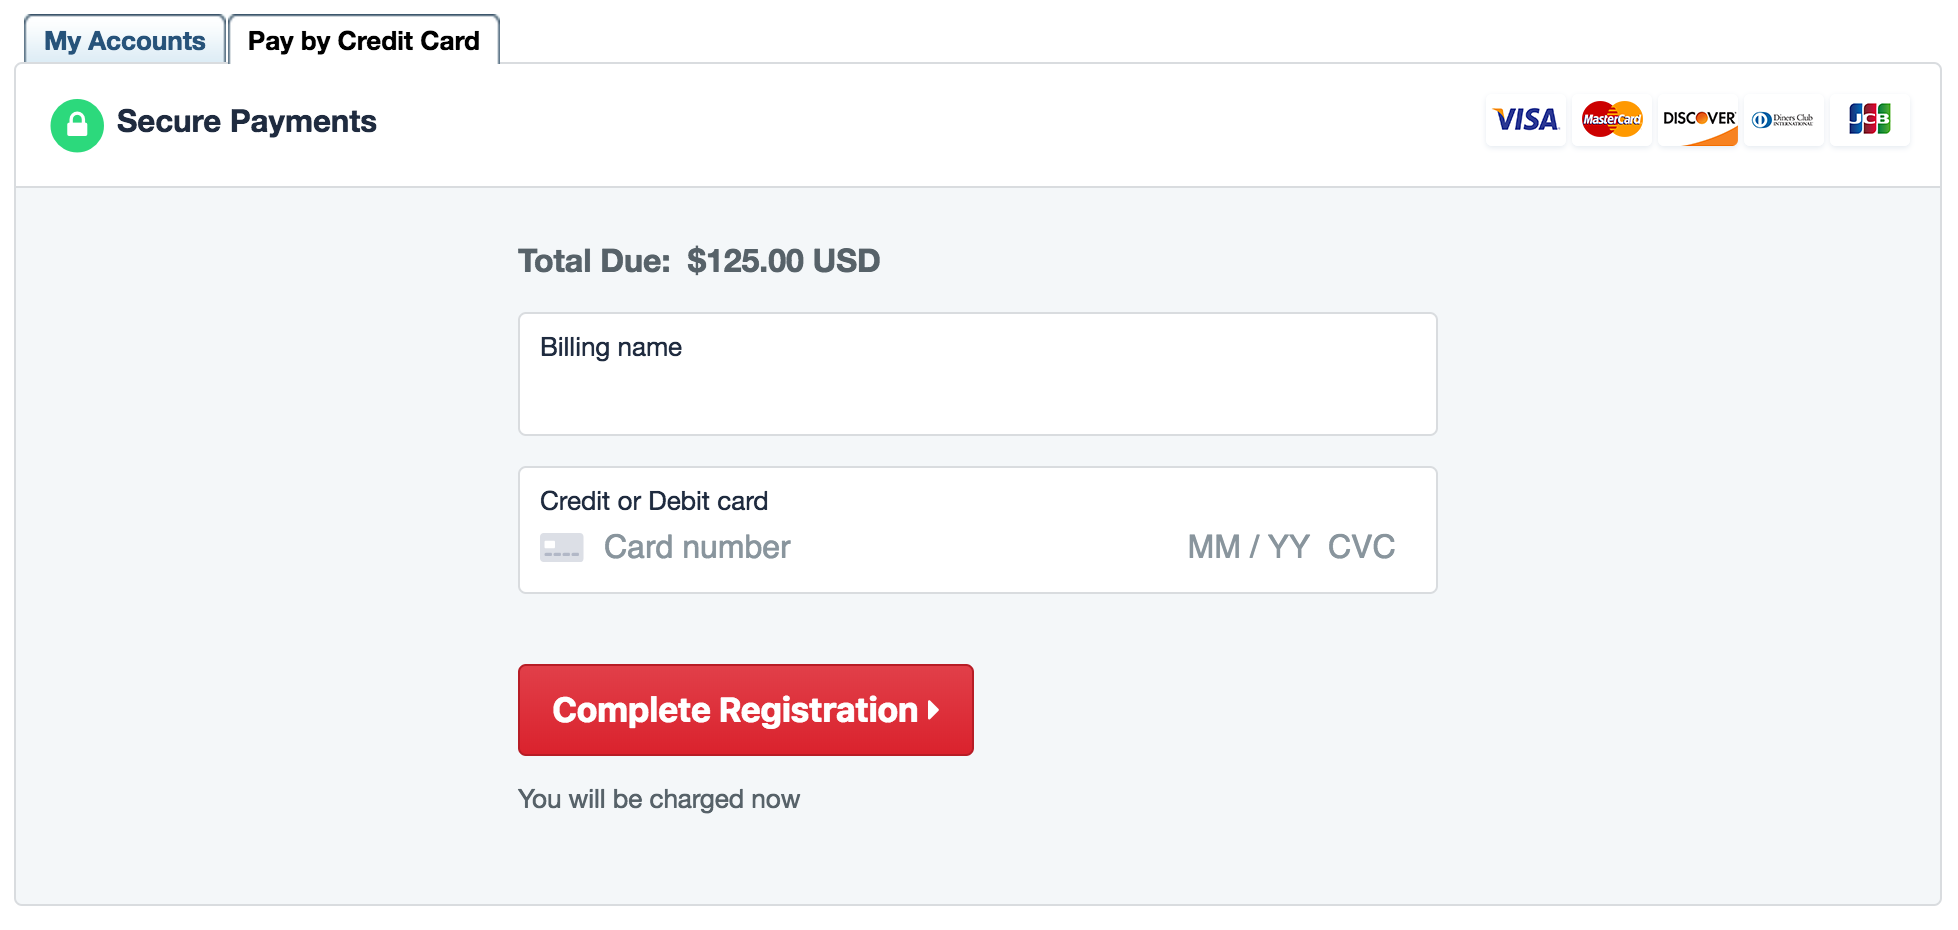 Payment forms are now more secure